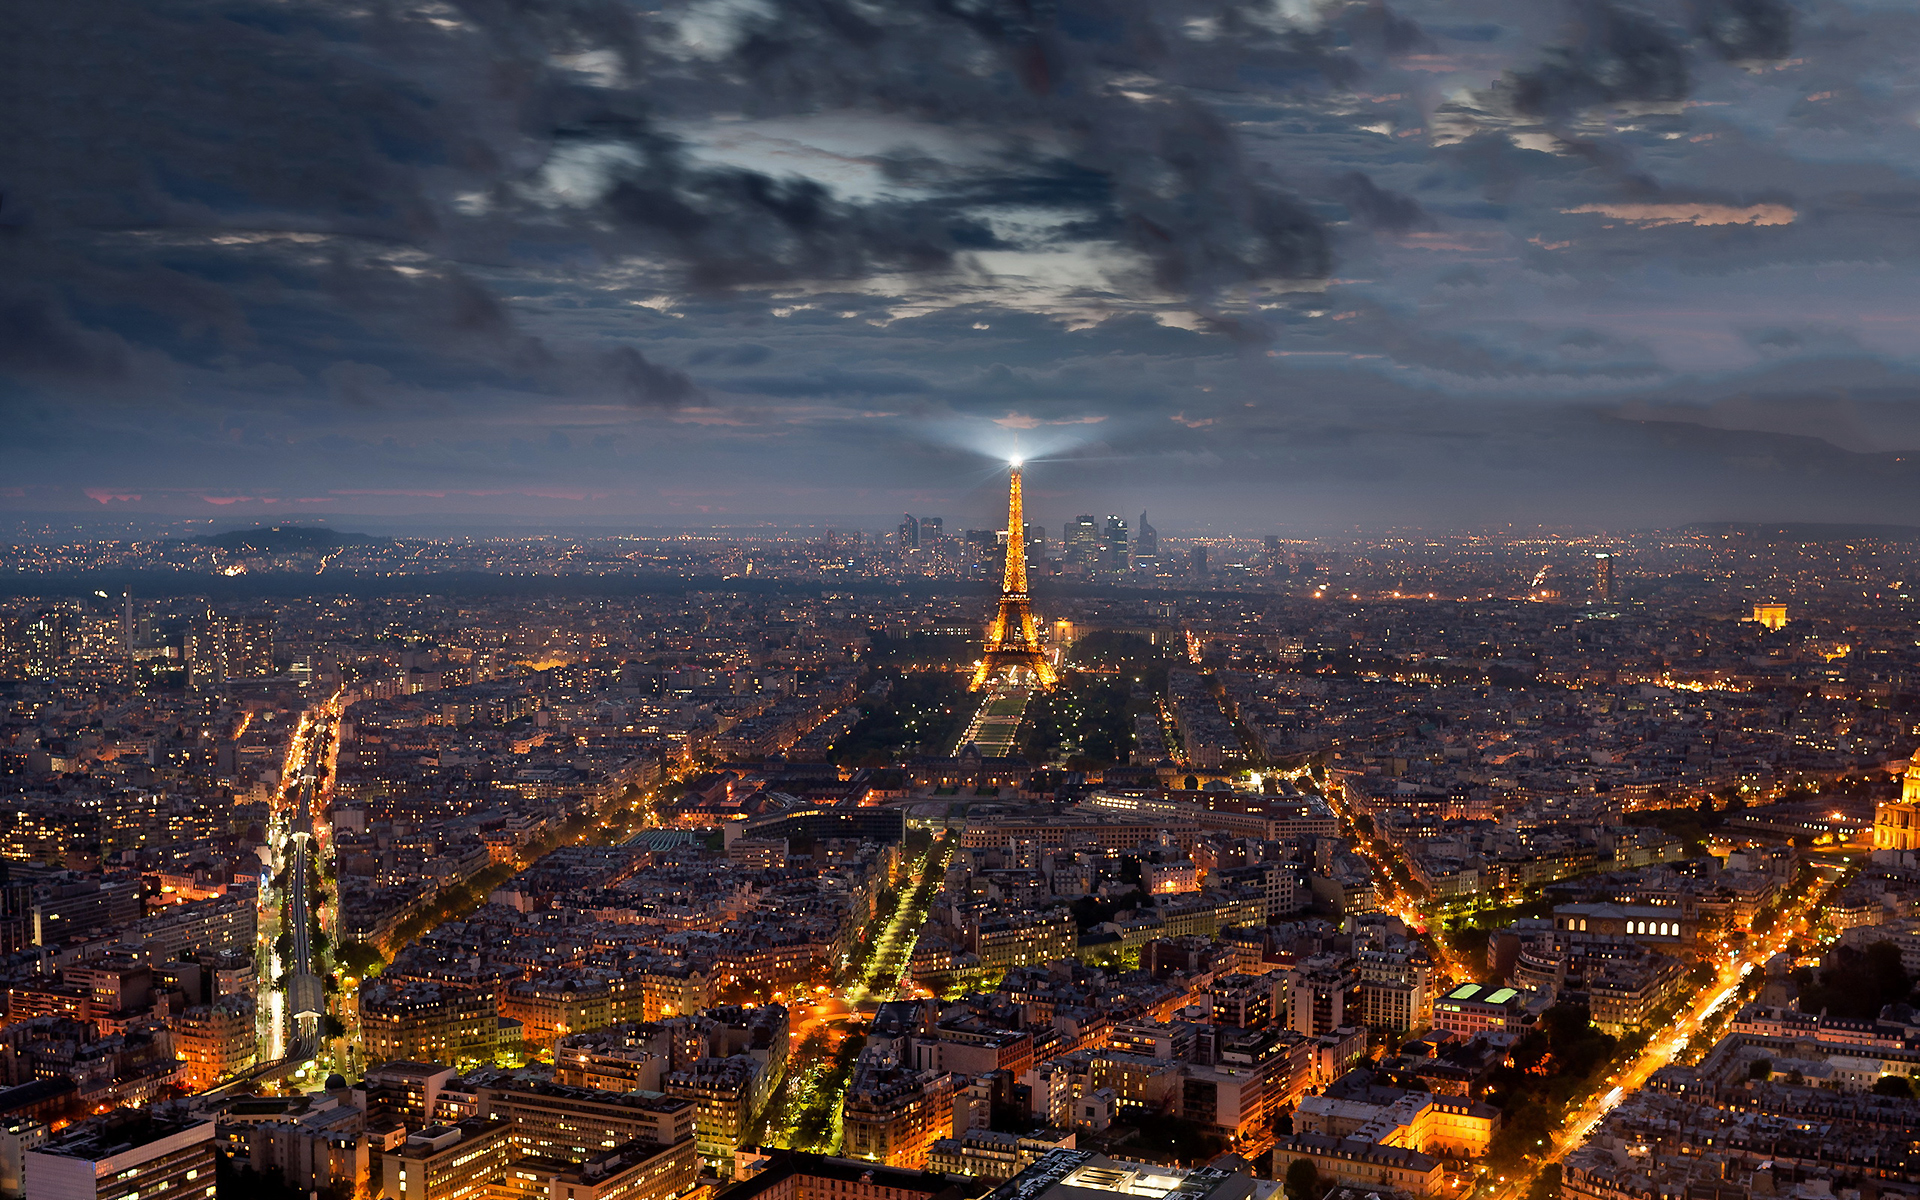 Paris at evening